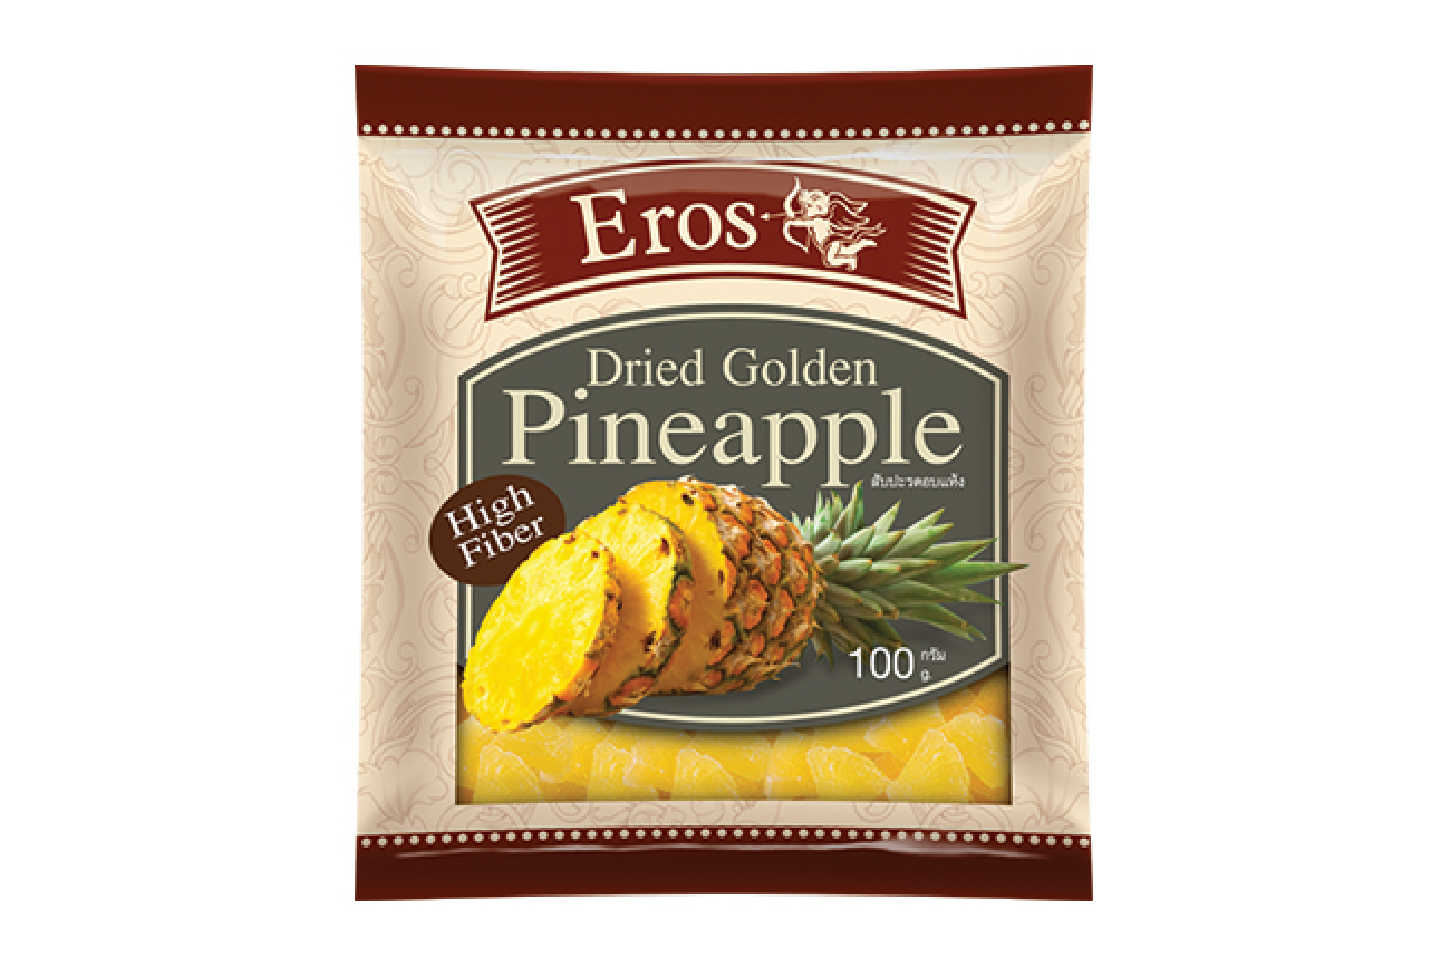 EROS Dried Golden Pineapple